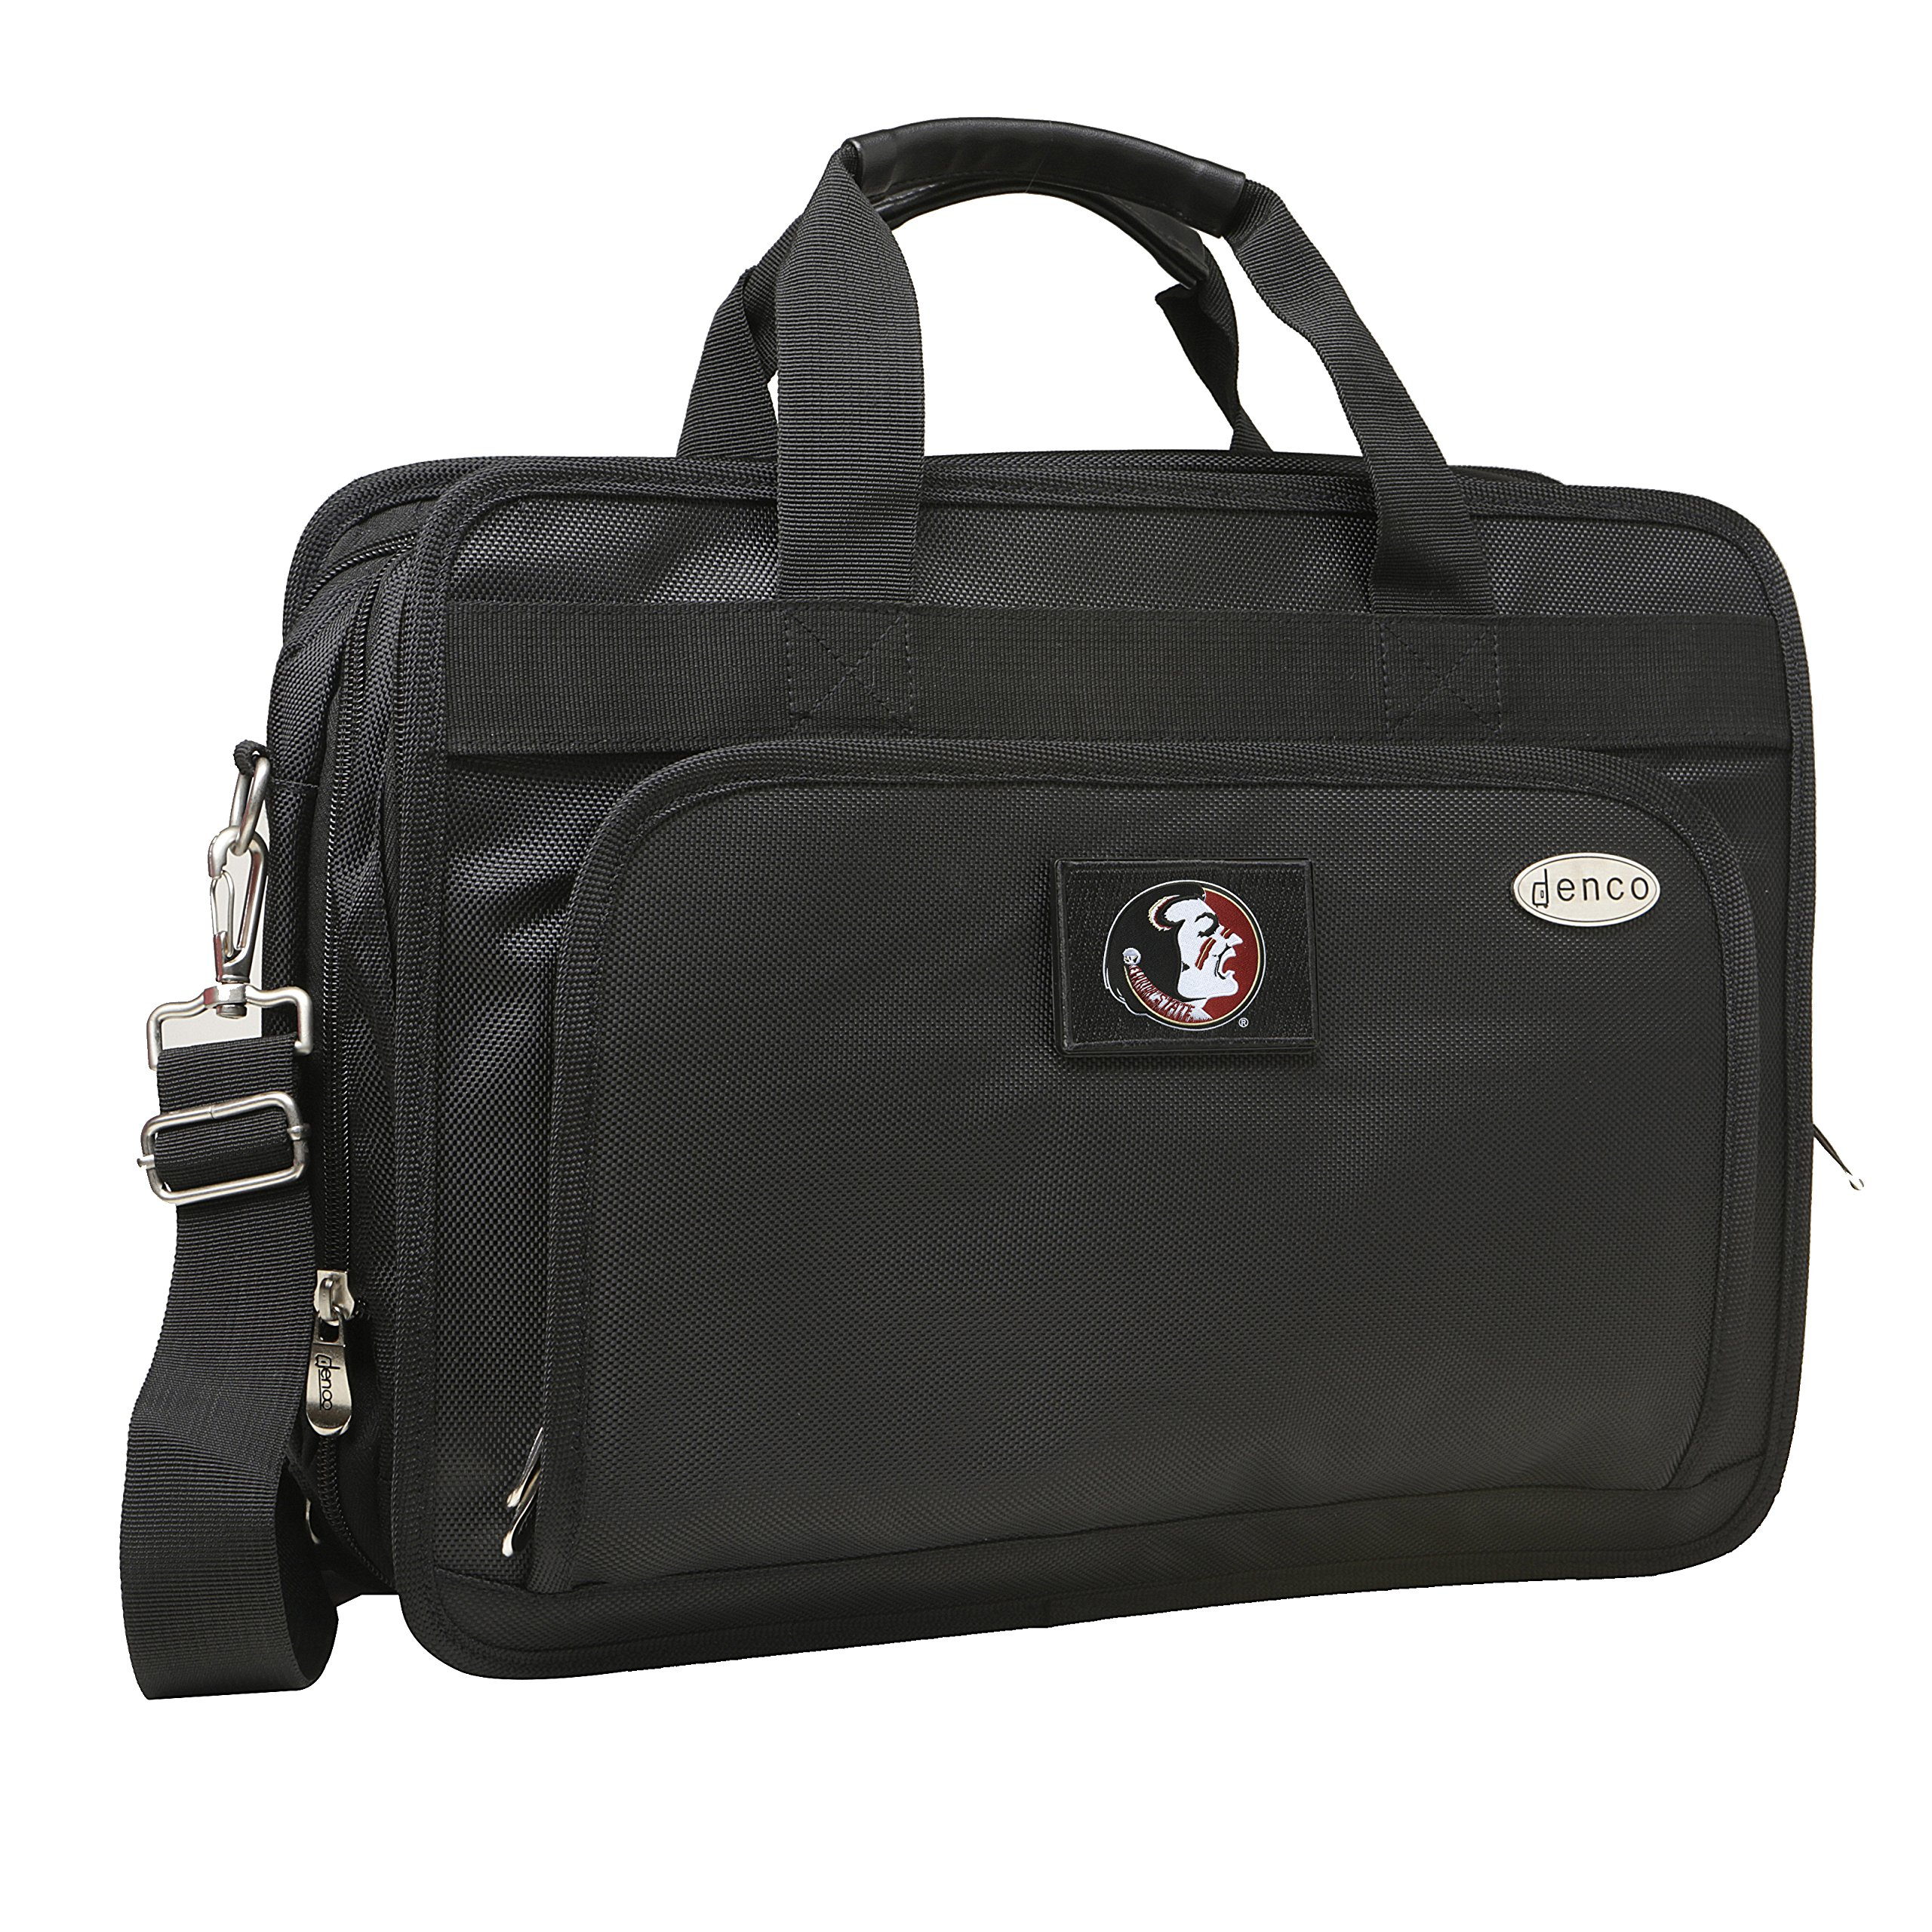 NCAA Florida State Seminoles Expandable Laptop Briefcase, 13-Inch, Black by Denco (Image #1)